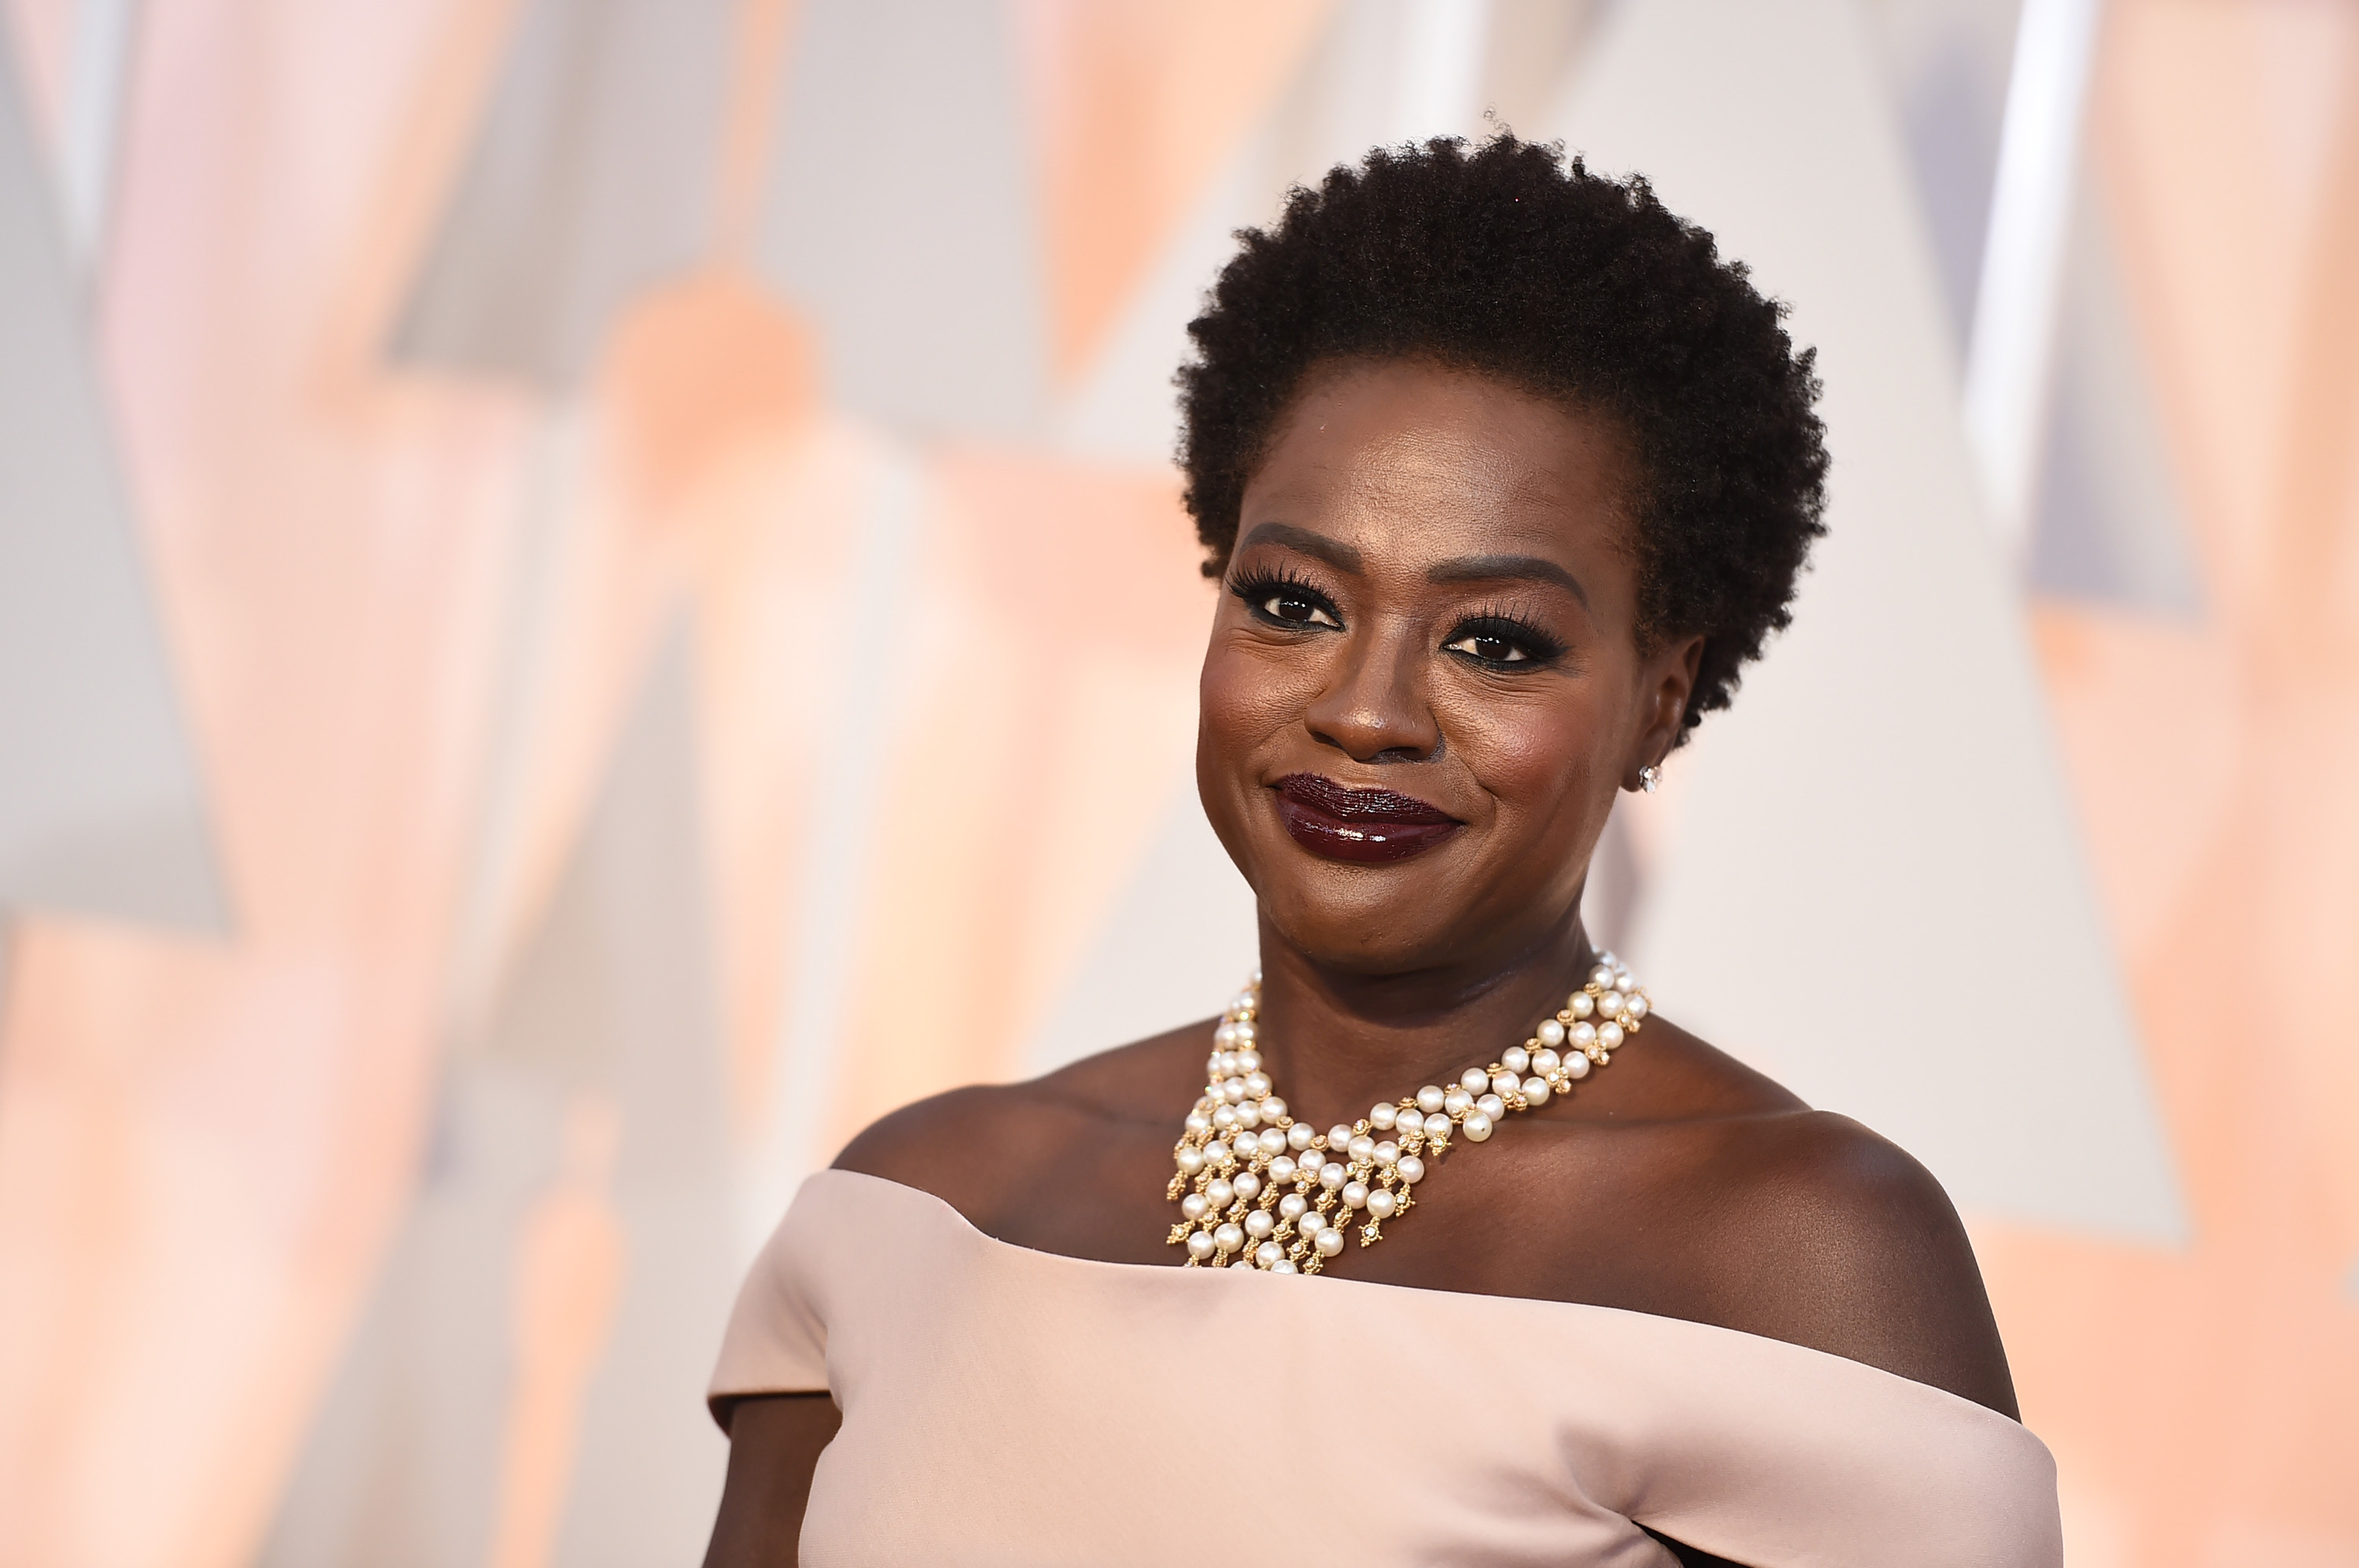 Viola Davis to star as Harriet Tubman in HBO movie